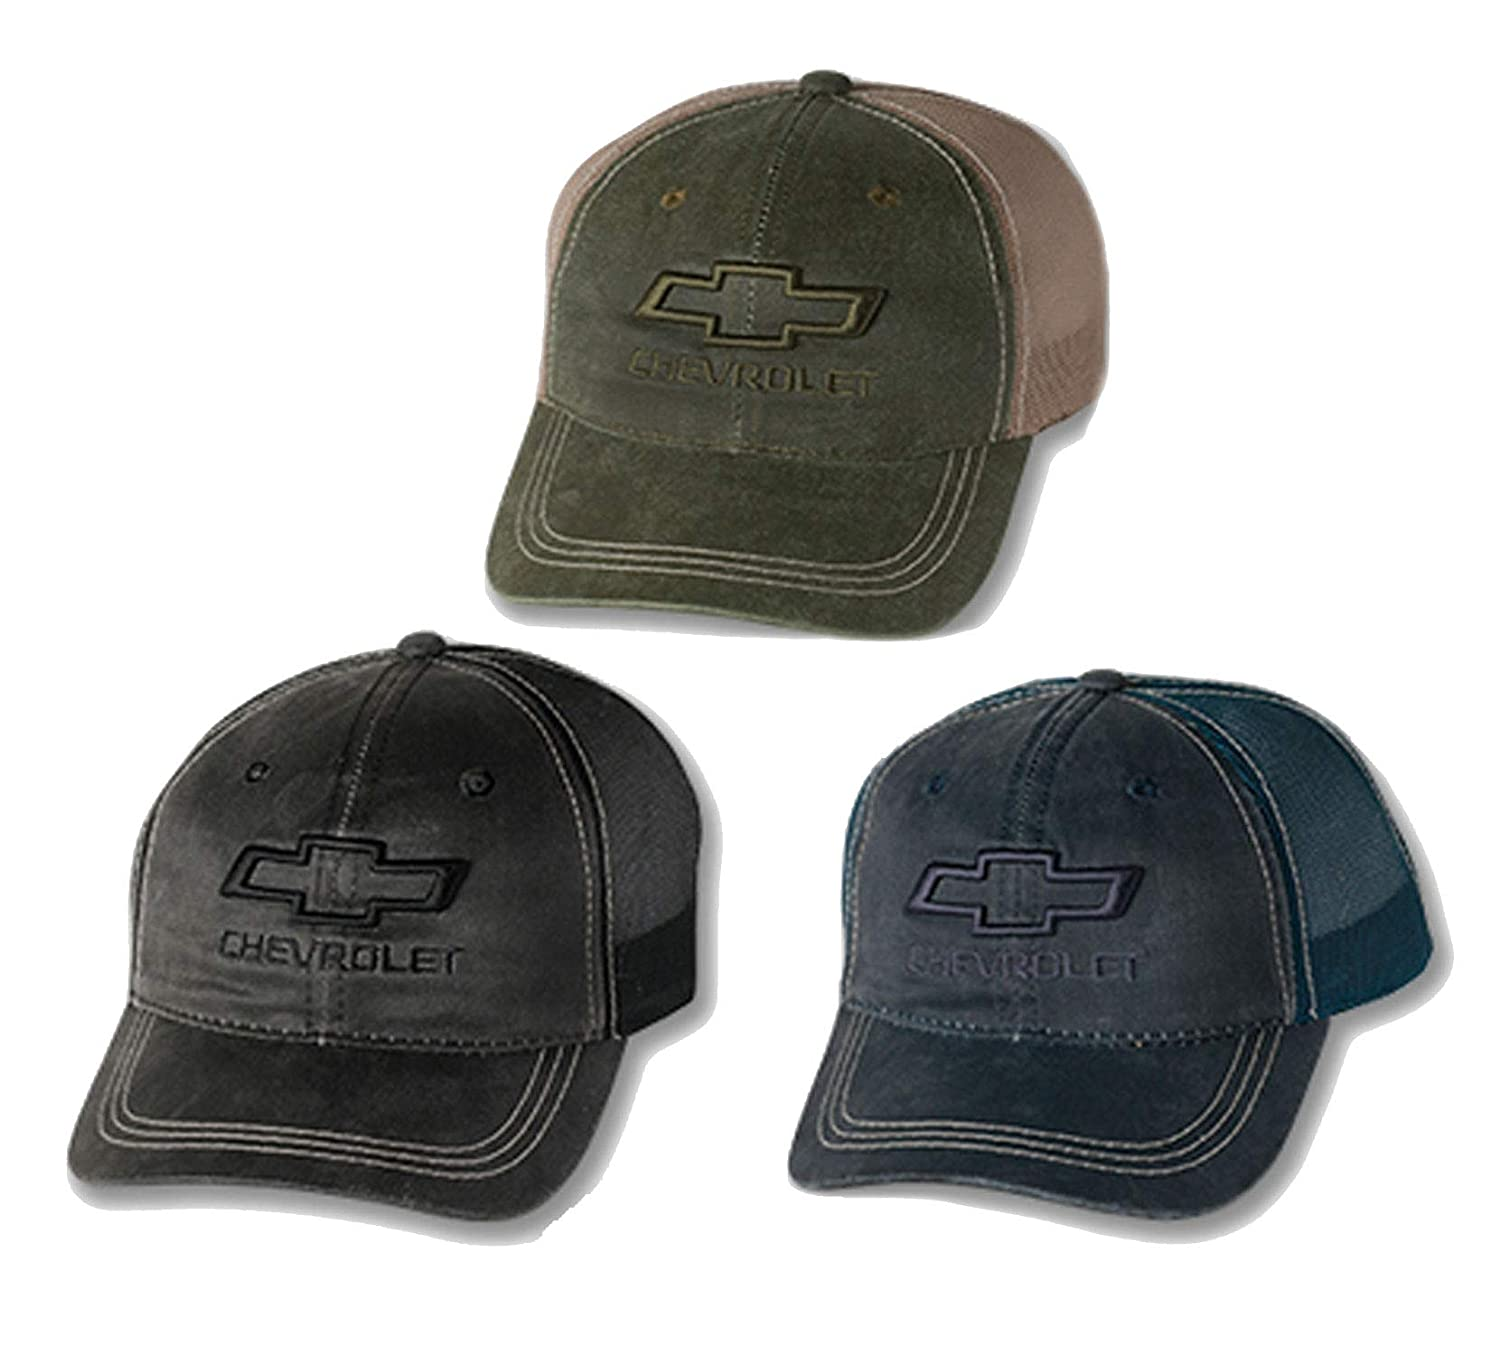 Bundle with Driving Style Decal Olive Gregs Automotive Compatible Chevrolet Chevy Bowtie Weathered Hat Mesh Back